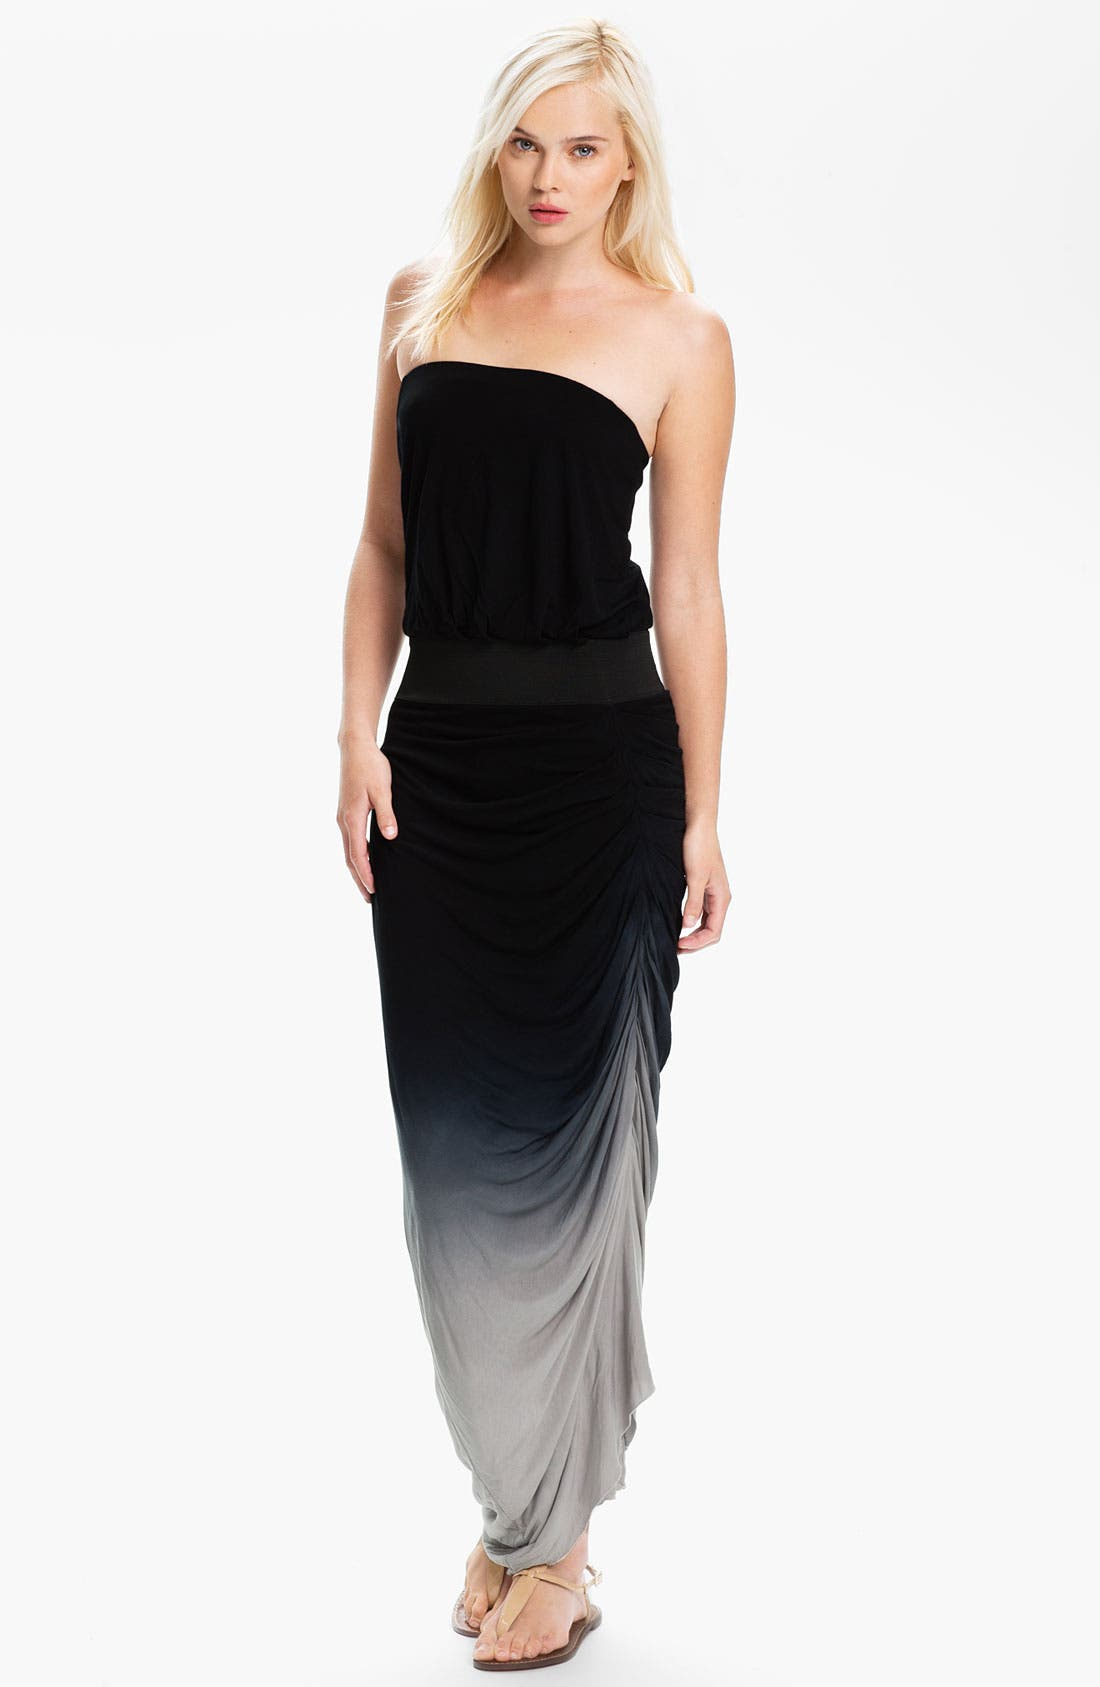 Main Image - Young, Fabulous & Broke 'Tania' Strapless Dress